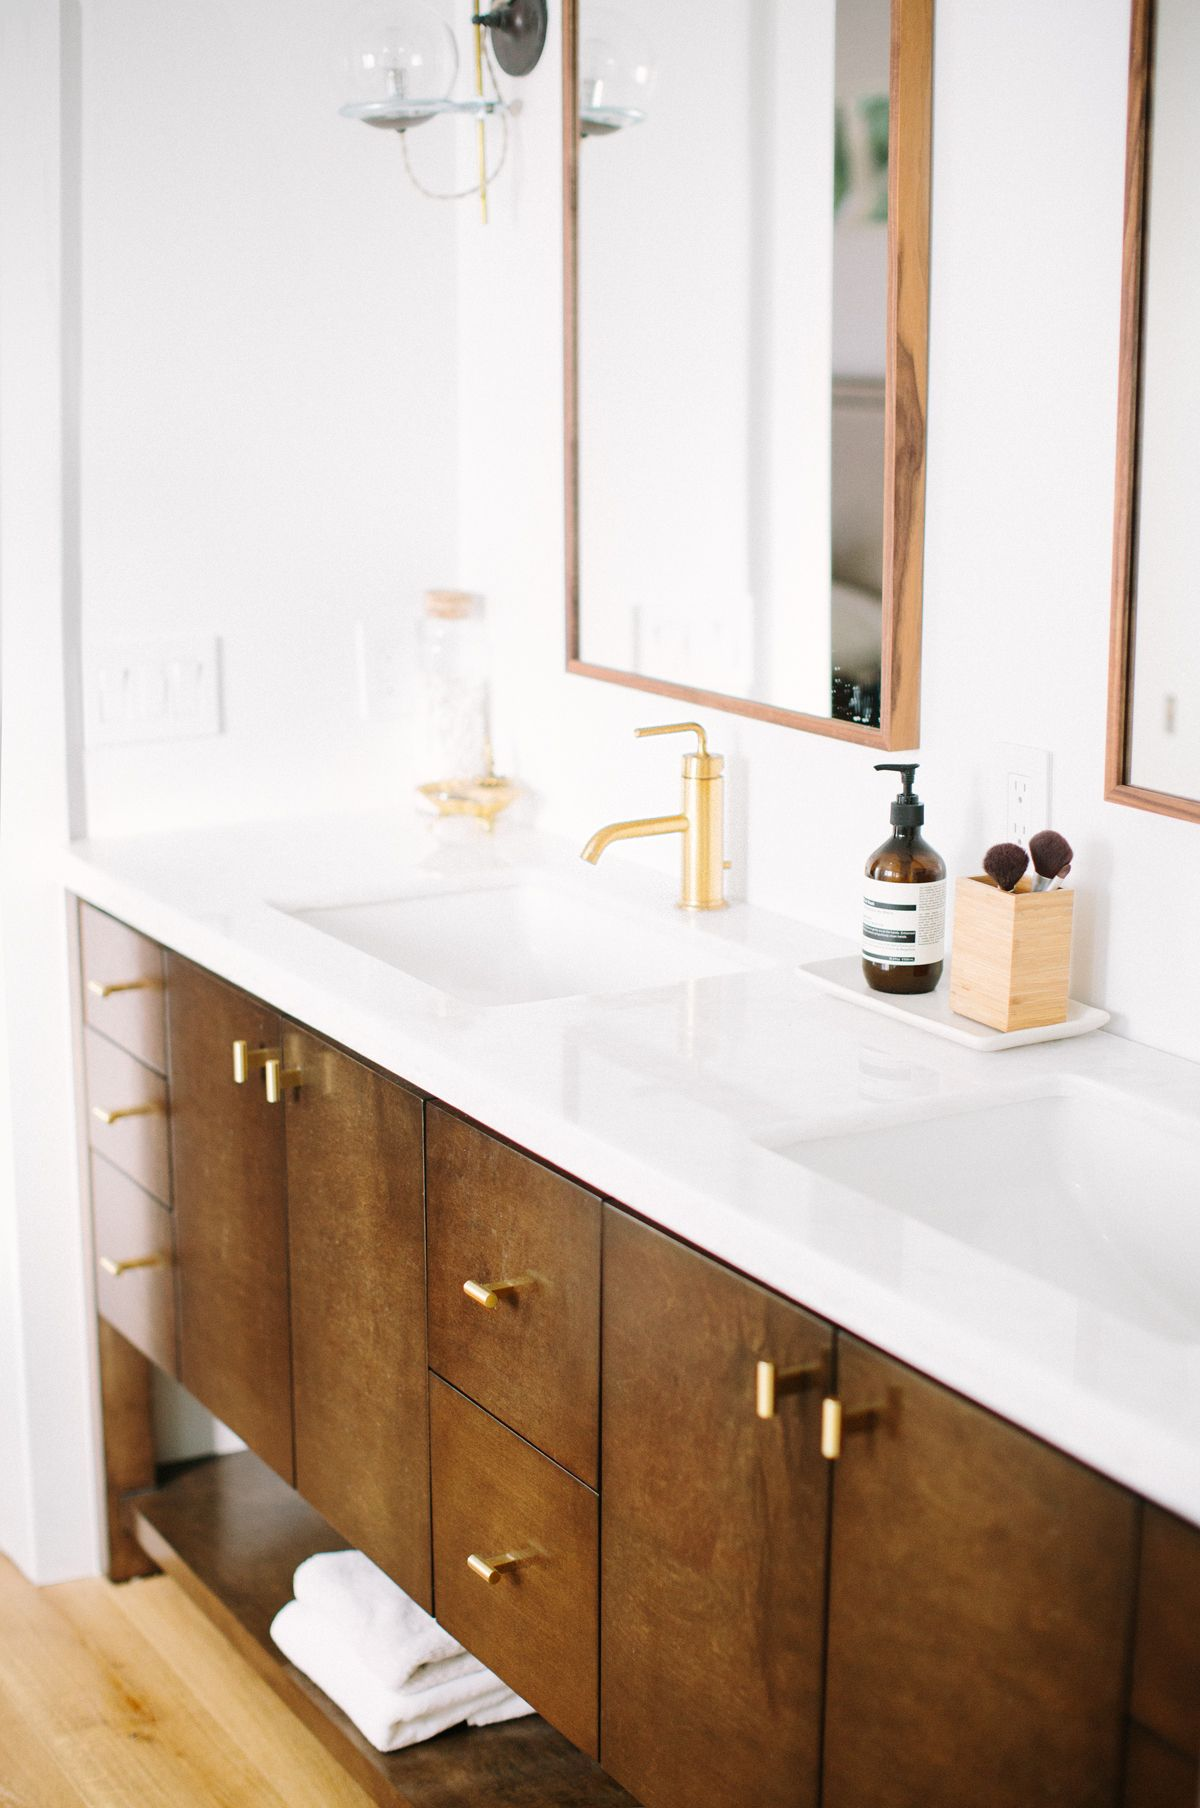 Custom Mid Century Modern Wood Bathroom Vanity Designed By Carly